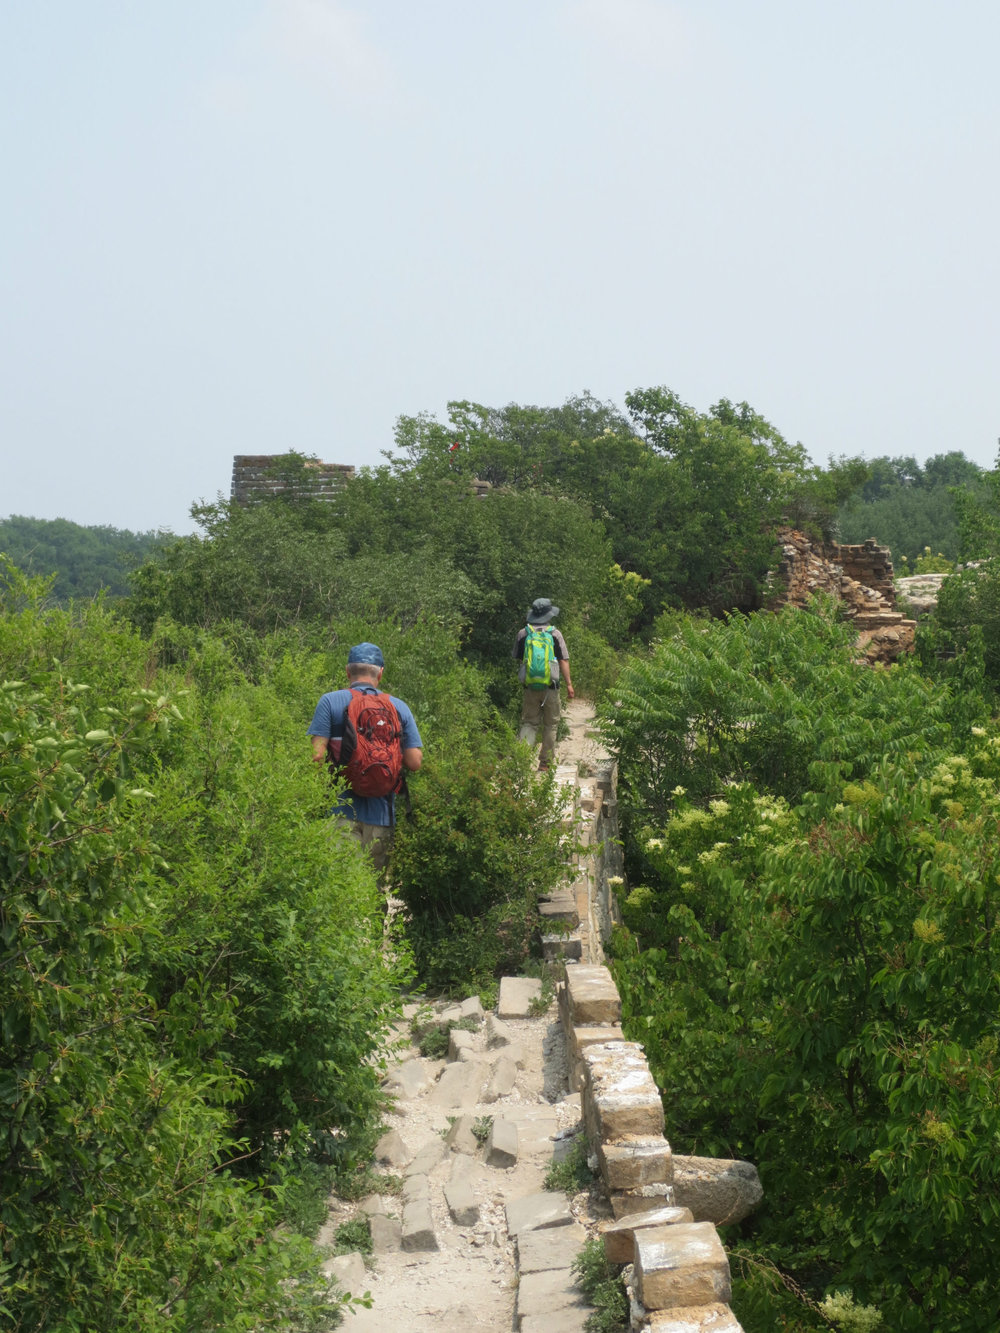 Hiking on the non-renovated parts of the Great Wall